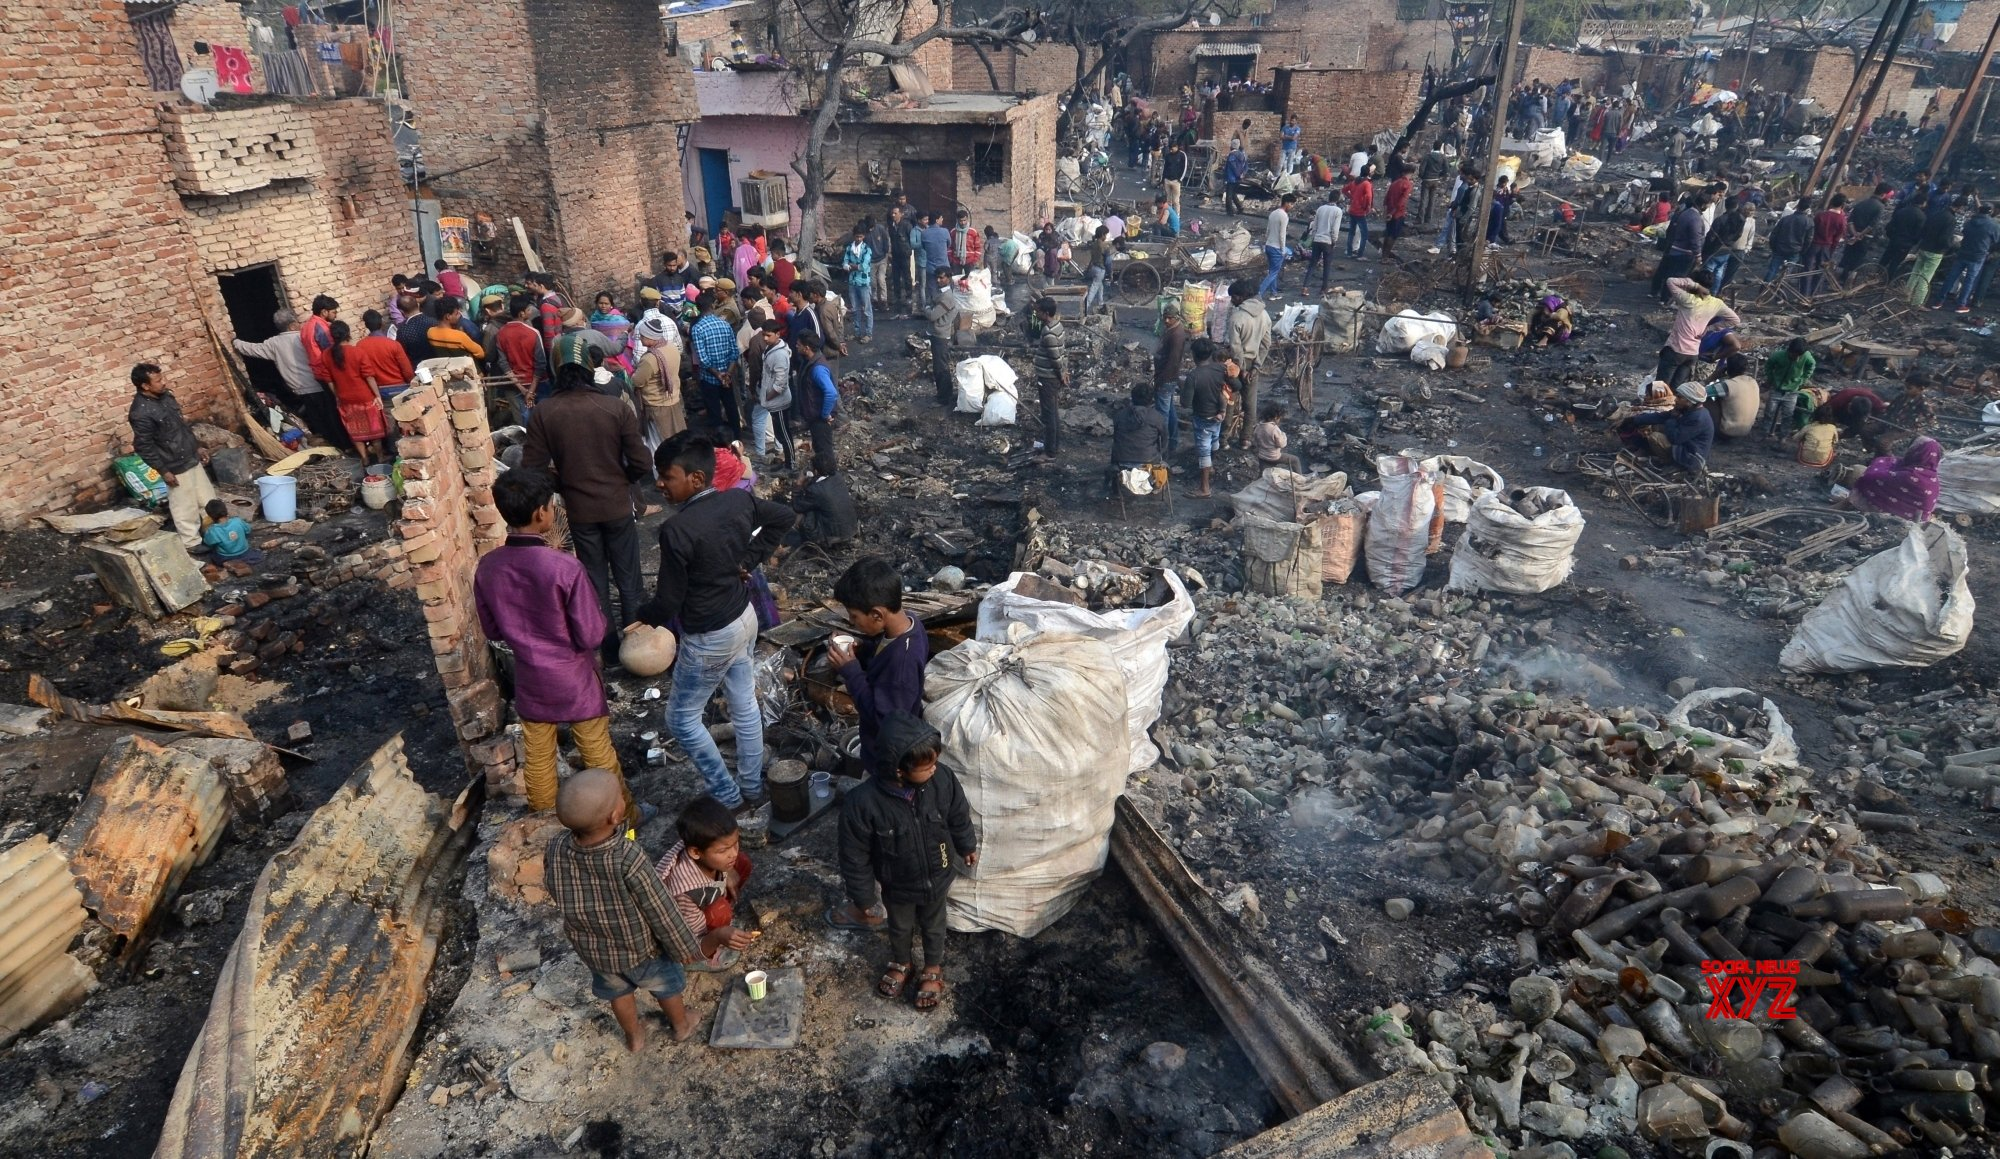 New Delhi: Fire engulfs 250 shanties in Delhi, government offers assistance (Batch - 2) #Gallery